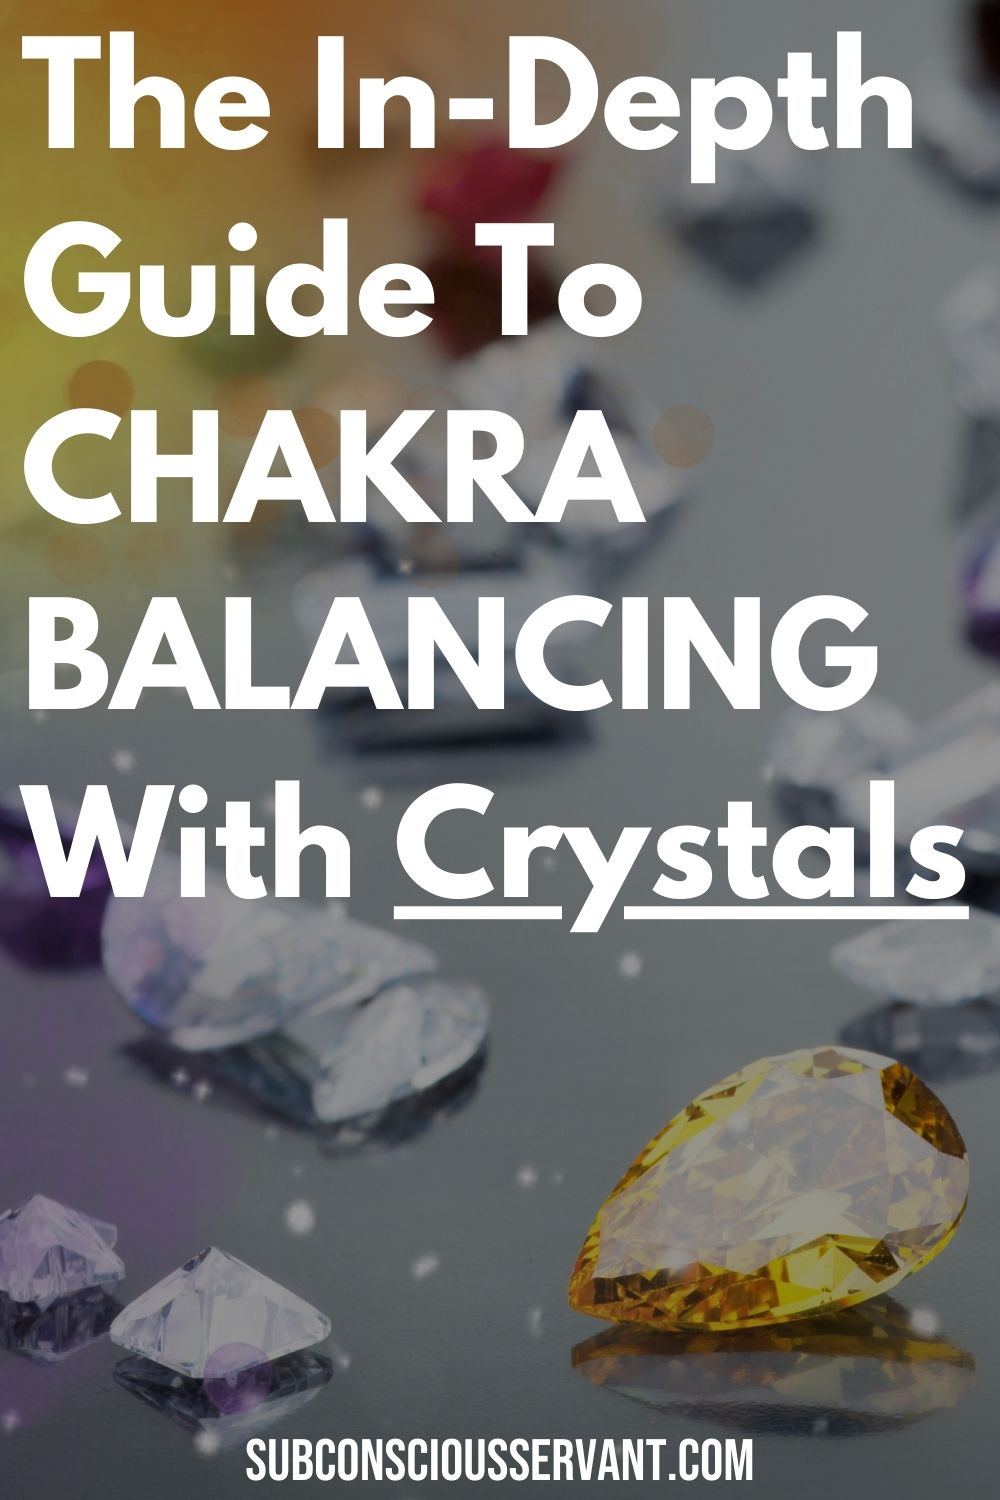 The In-Depth Guide To Chakra Balancing With Crystals